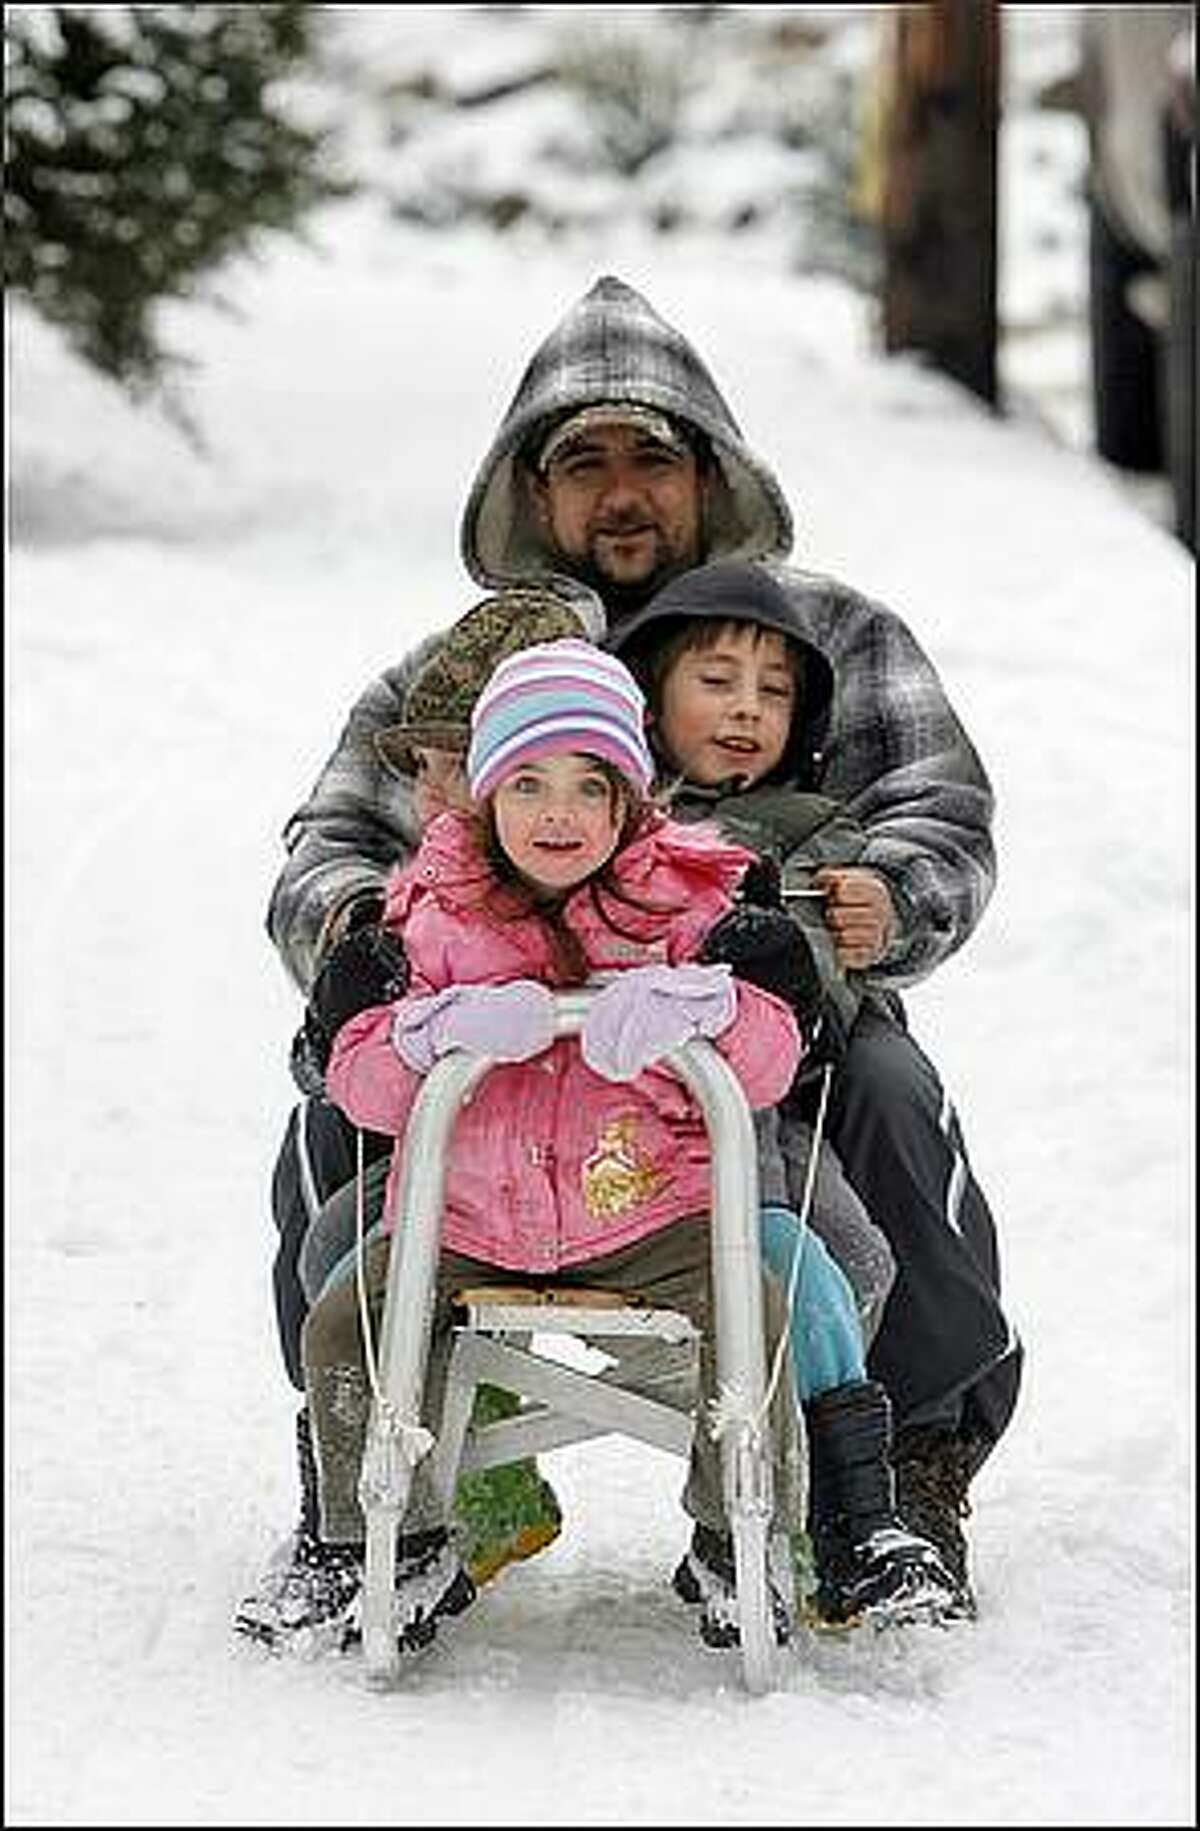 Zsolt Prepuk, a welder and metal fabricator, slides down SW Wildwood Place in Seattle, with his son, Attila Prepuk (right), 7, daughter Anita Prepuk (front), 3, and neice Eliza Gorog (left), 3, on a